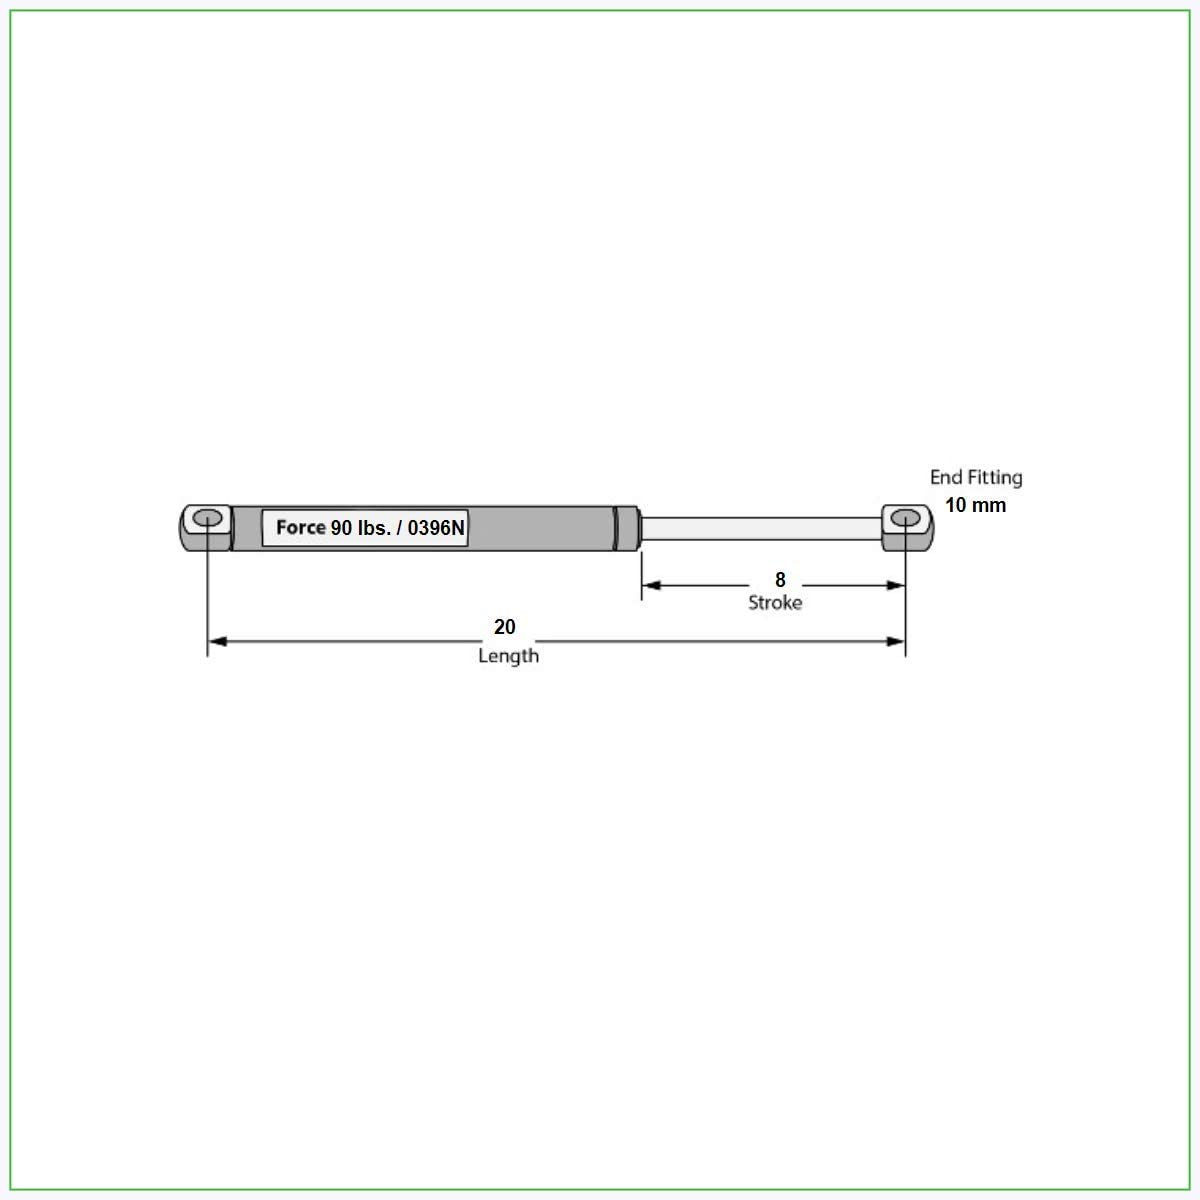 20 Length x 90 lb Force with 10 mm Ends. Hatchlift Gas Springs 508mm x 0396N